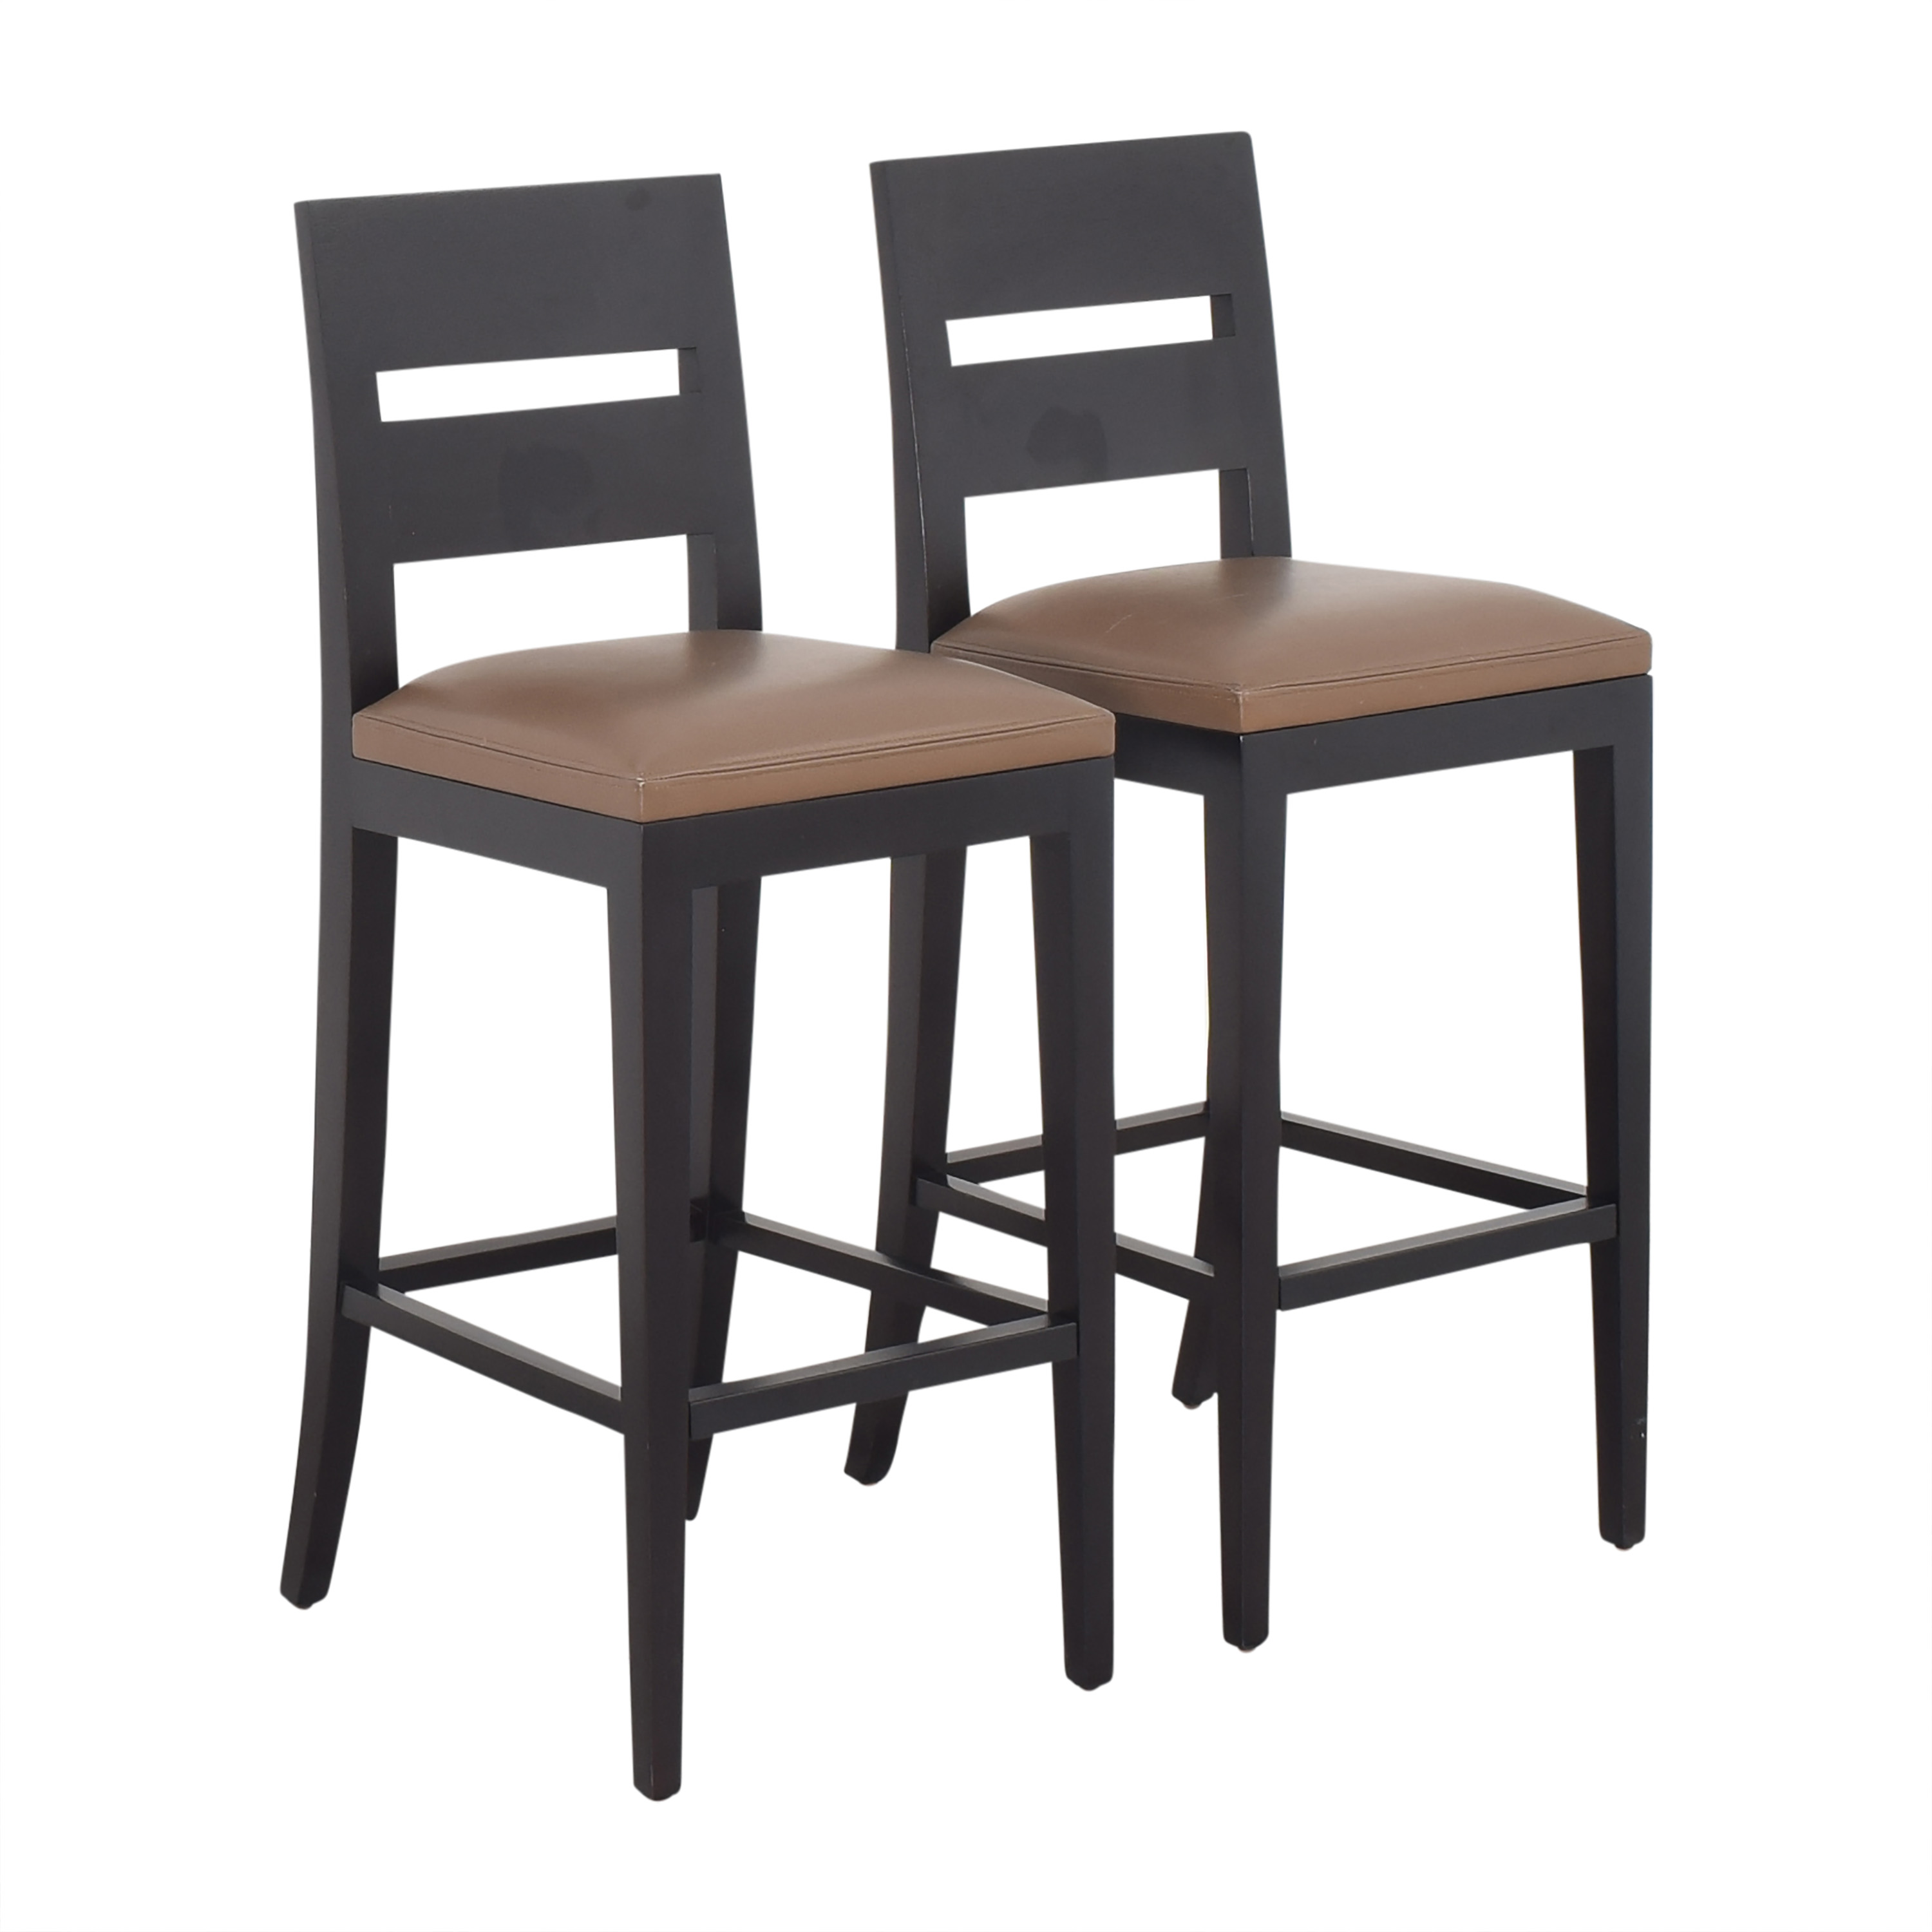 buy Holly Hunt Holly Hunt Archipel Bar Stools by Christian Liaigre online